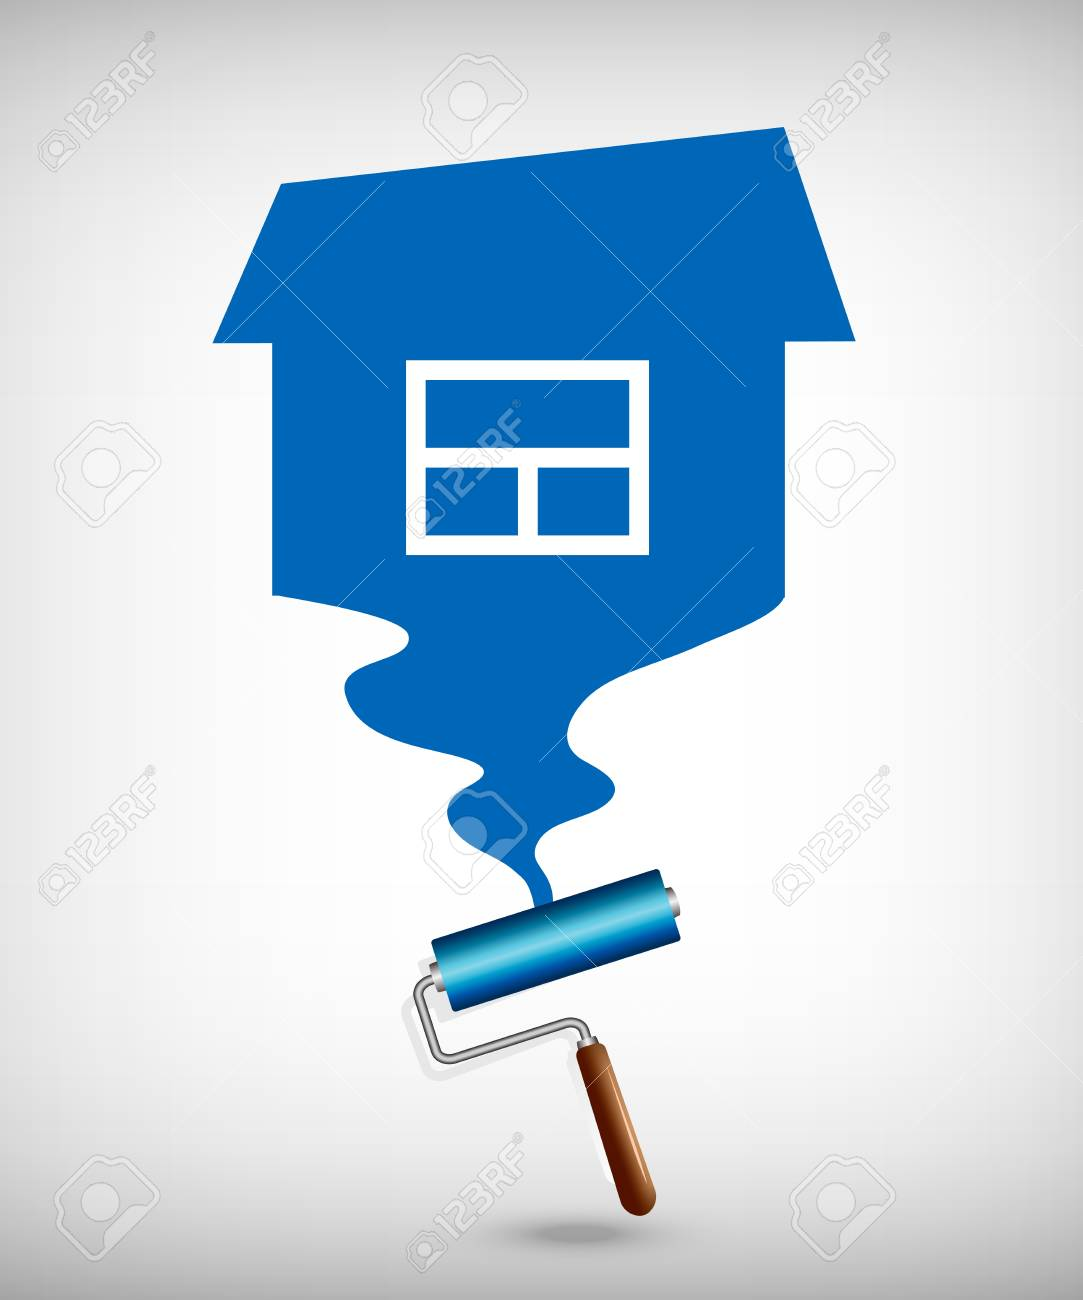 painting the house paint rollers royalty free cliparts, vectors